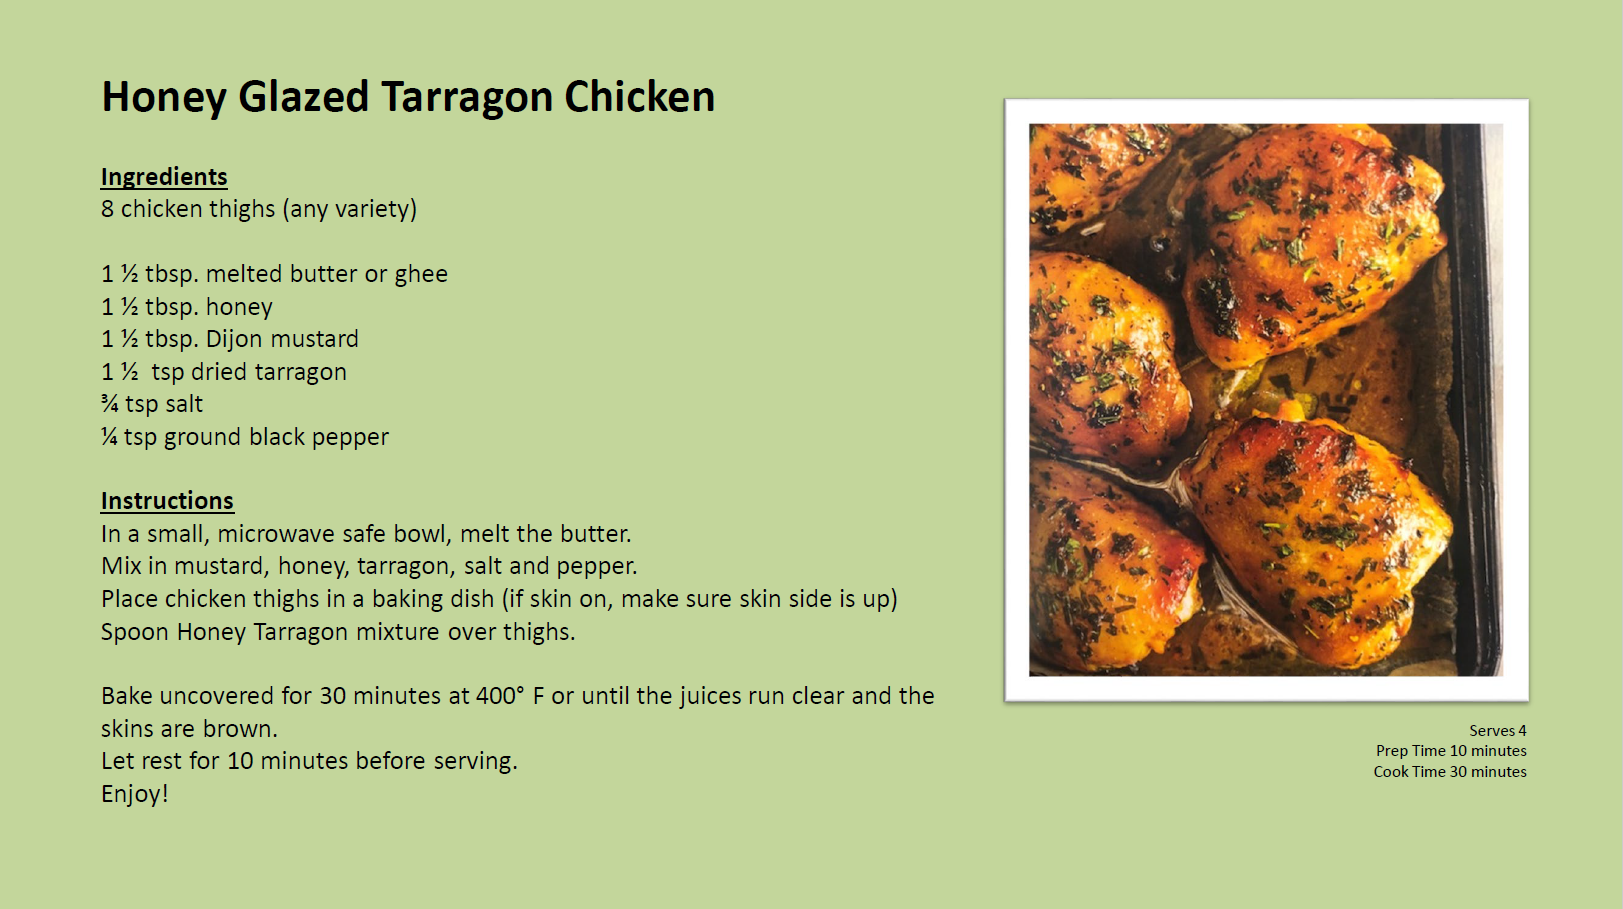 Honey Glazed Tarragon Chicken